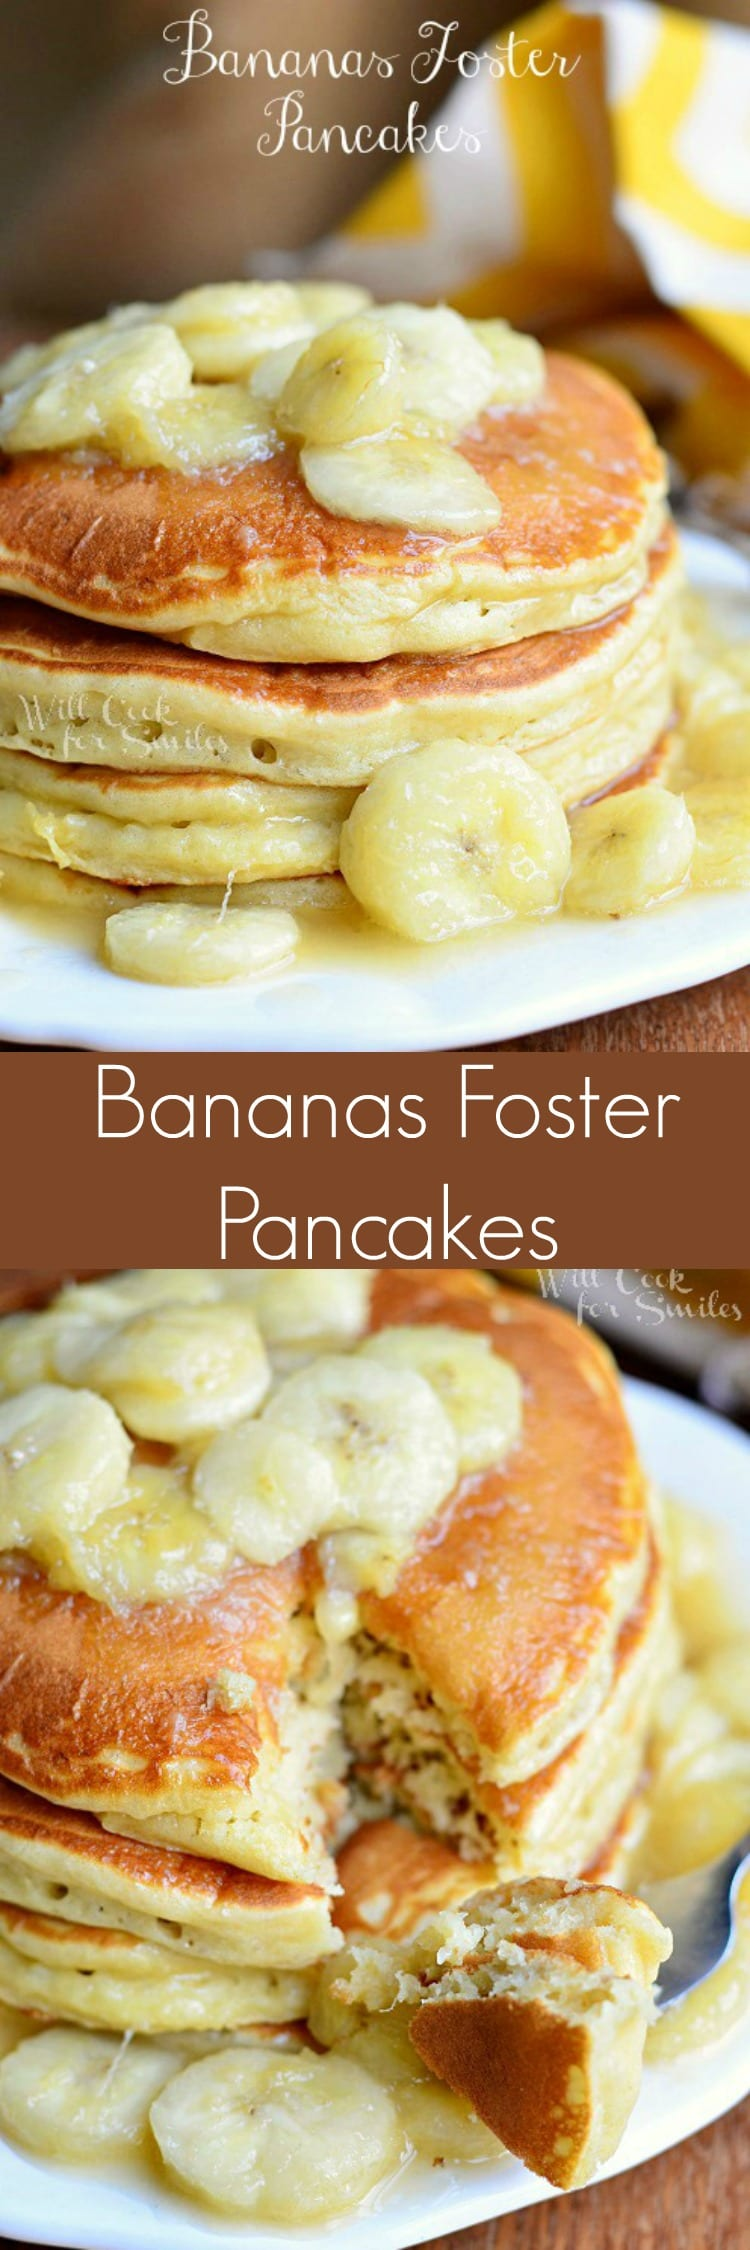 Bananas Foster Pancakes make a beautiful and sweet breakfast idea to share with someone special this upcoming Valentine's Day! These soft and fluffy banana buttermilk pancakes topped with bananas foster sauce! #pancakes #bananasfoster #banana